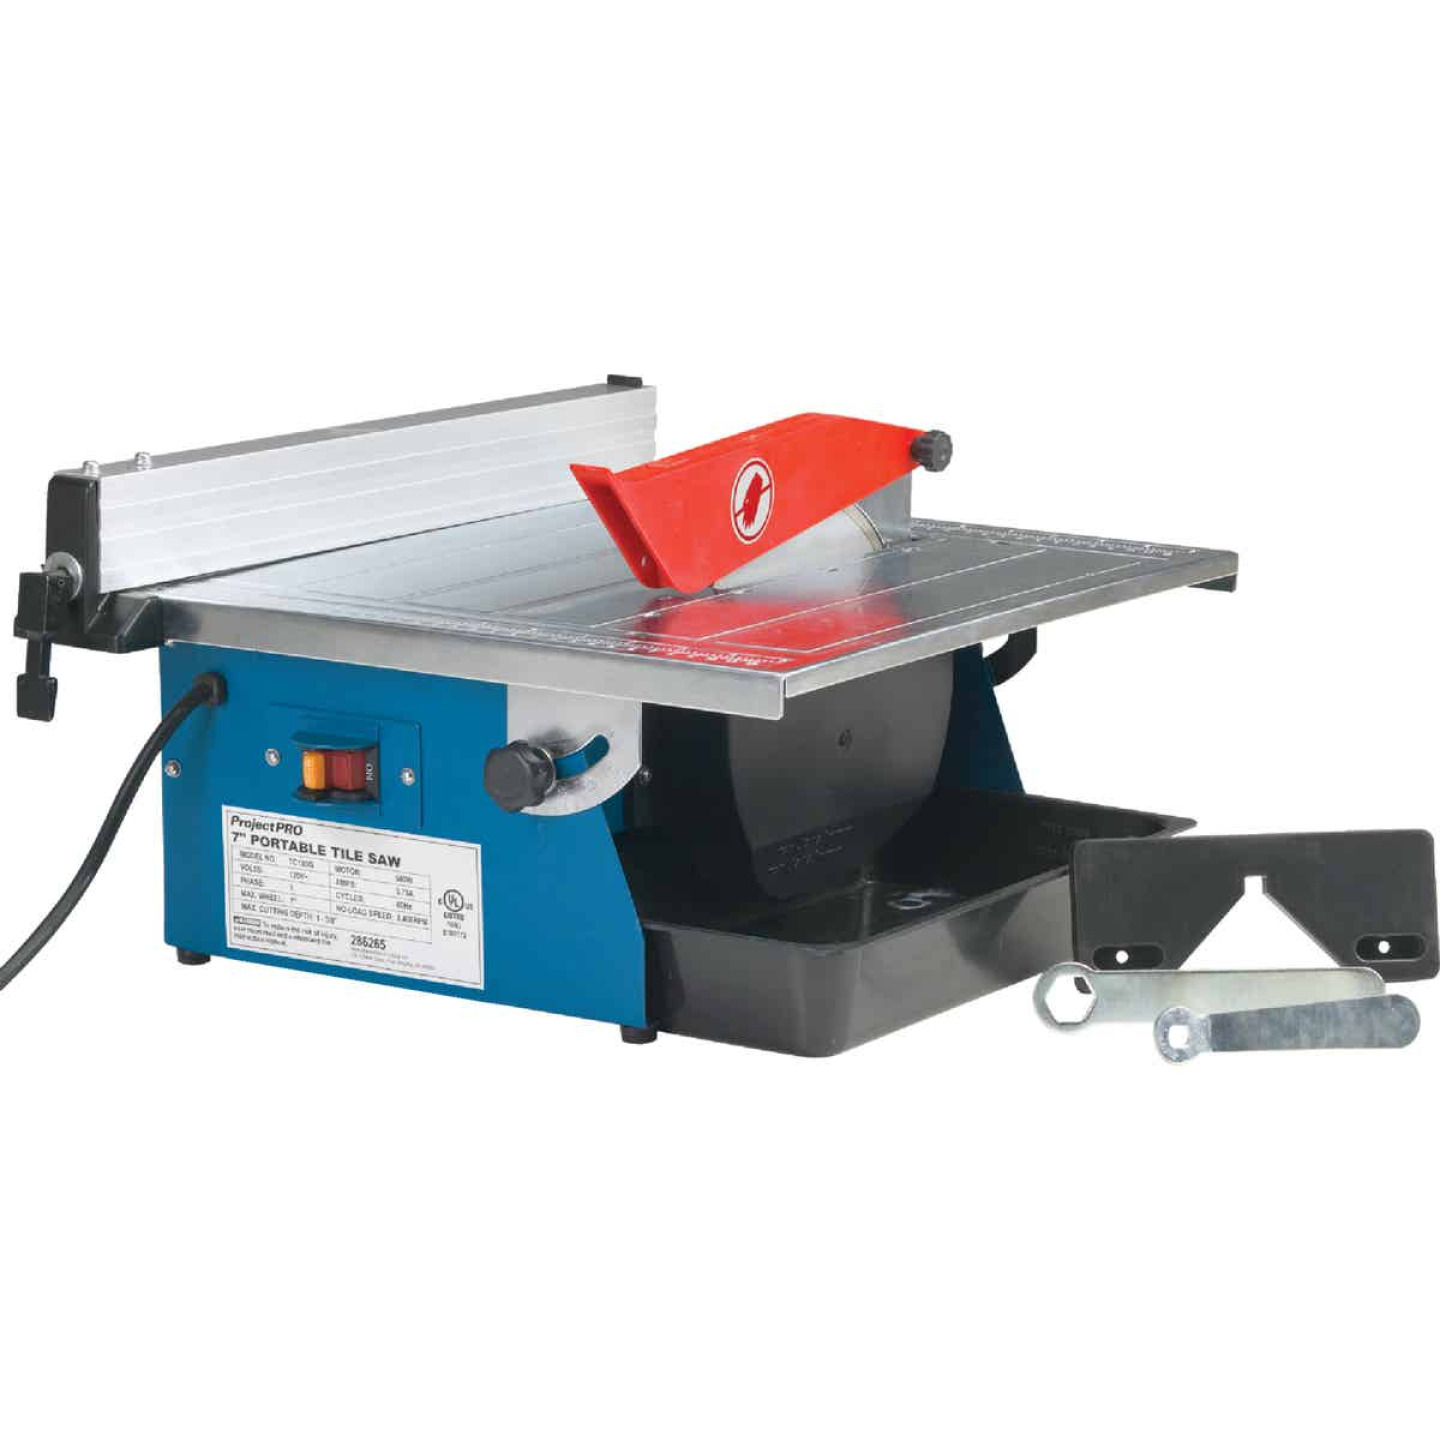 Project Pro 7 In. Portable Tile Saw Image 1